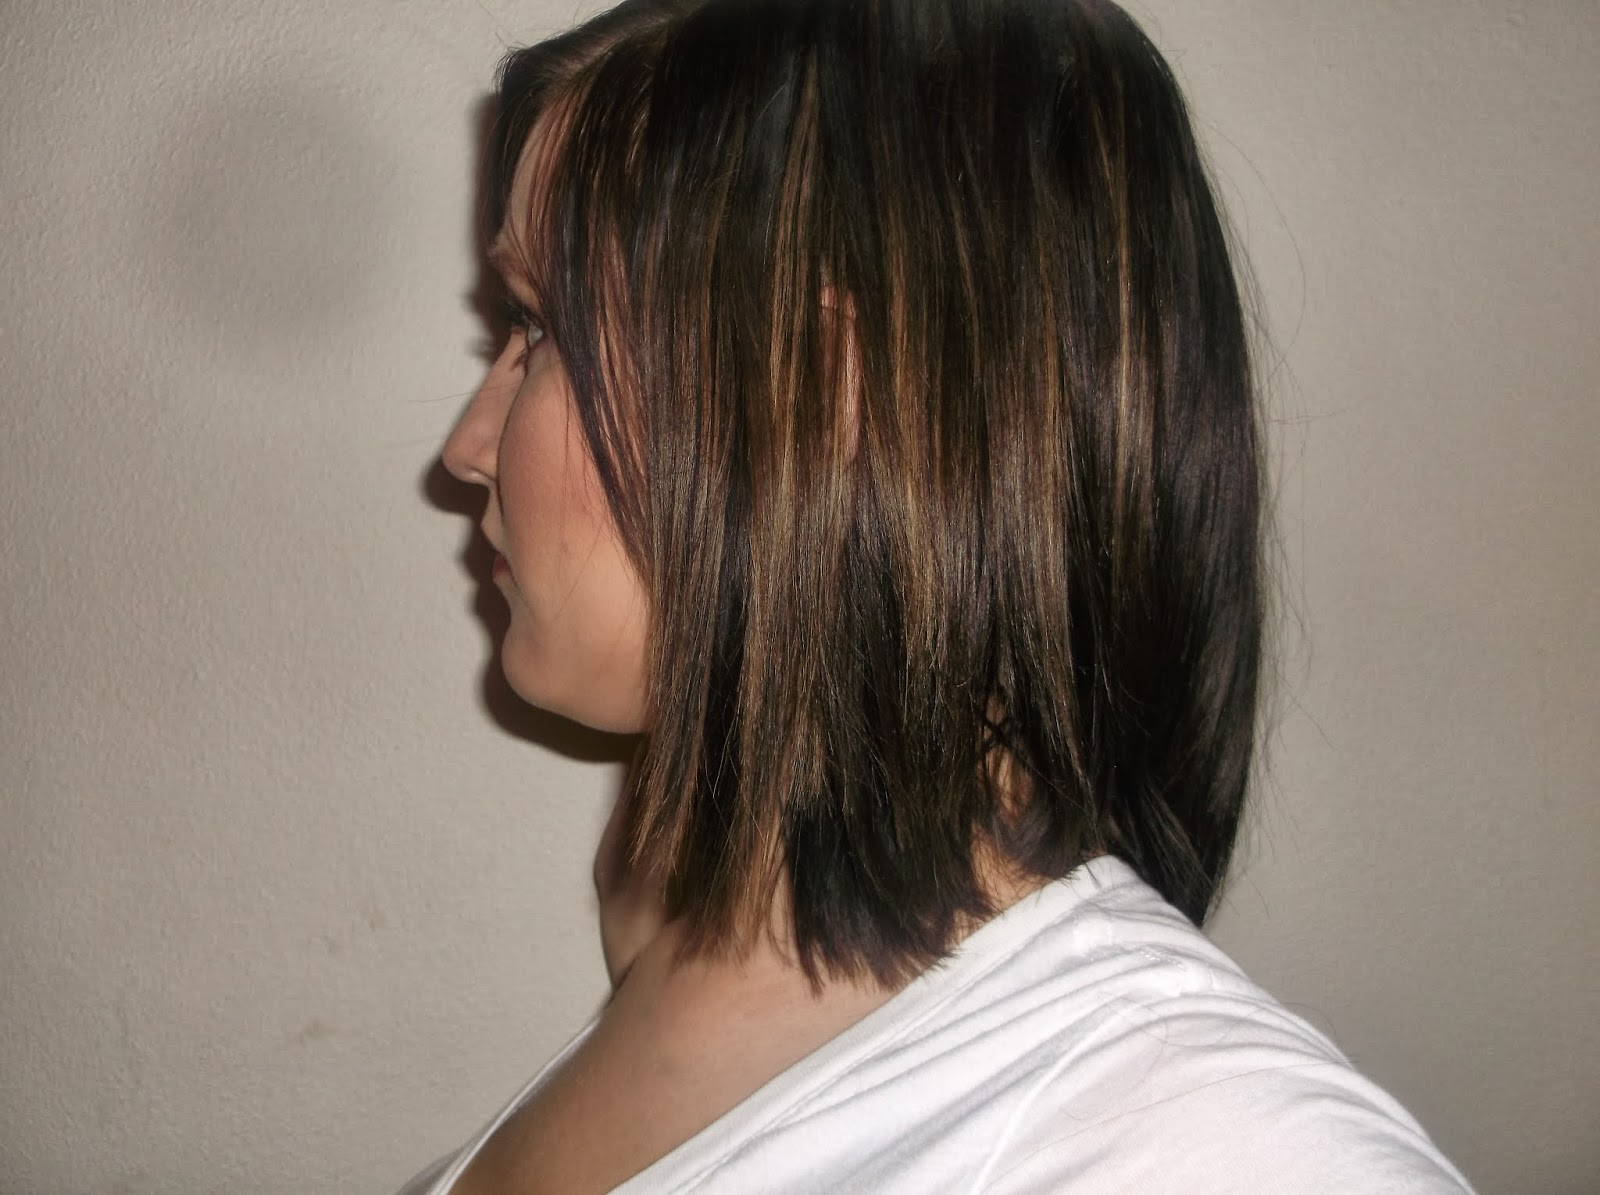 ... 18> Images For - Dark Brown Hair With Blonde Peekaboo Highlights